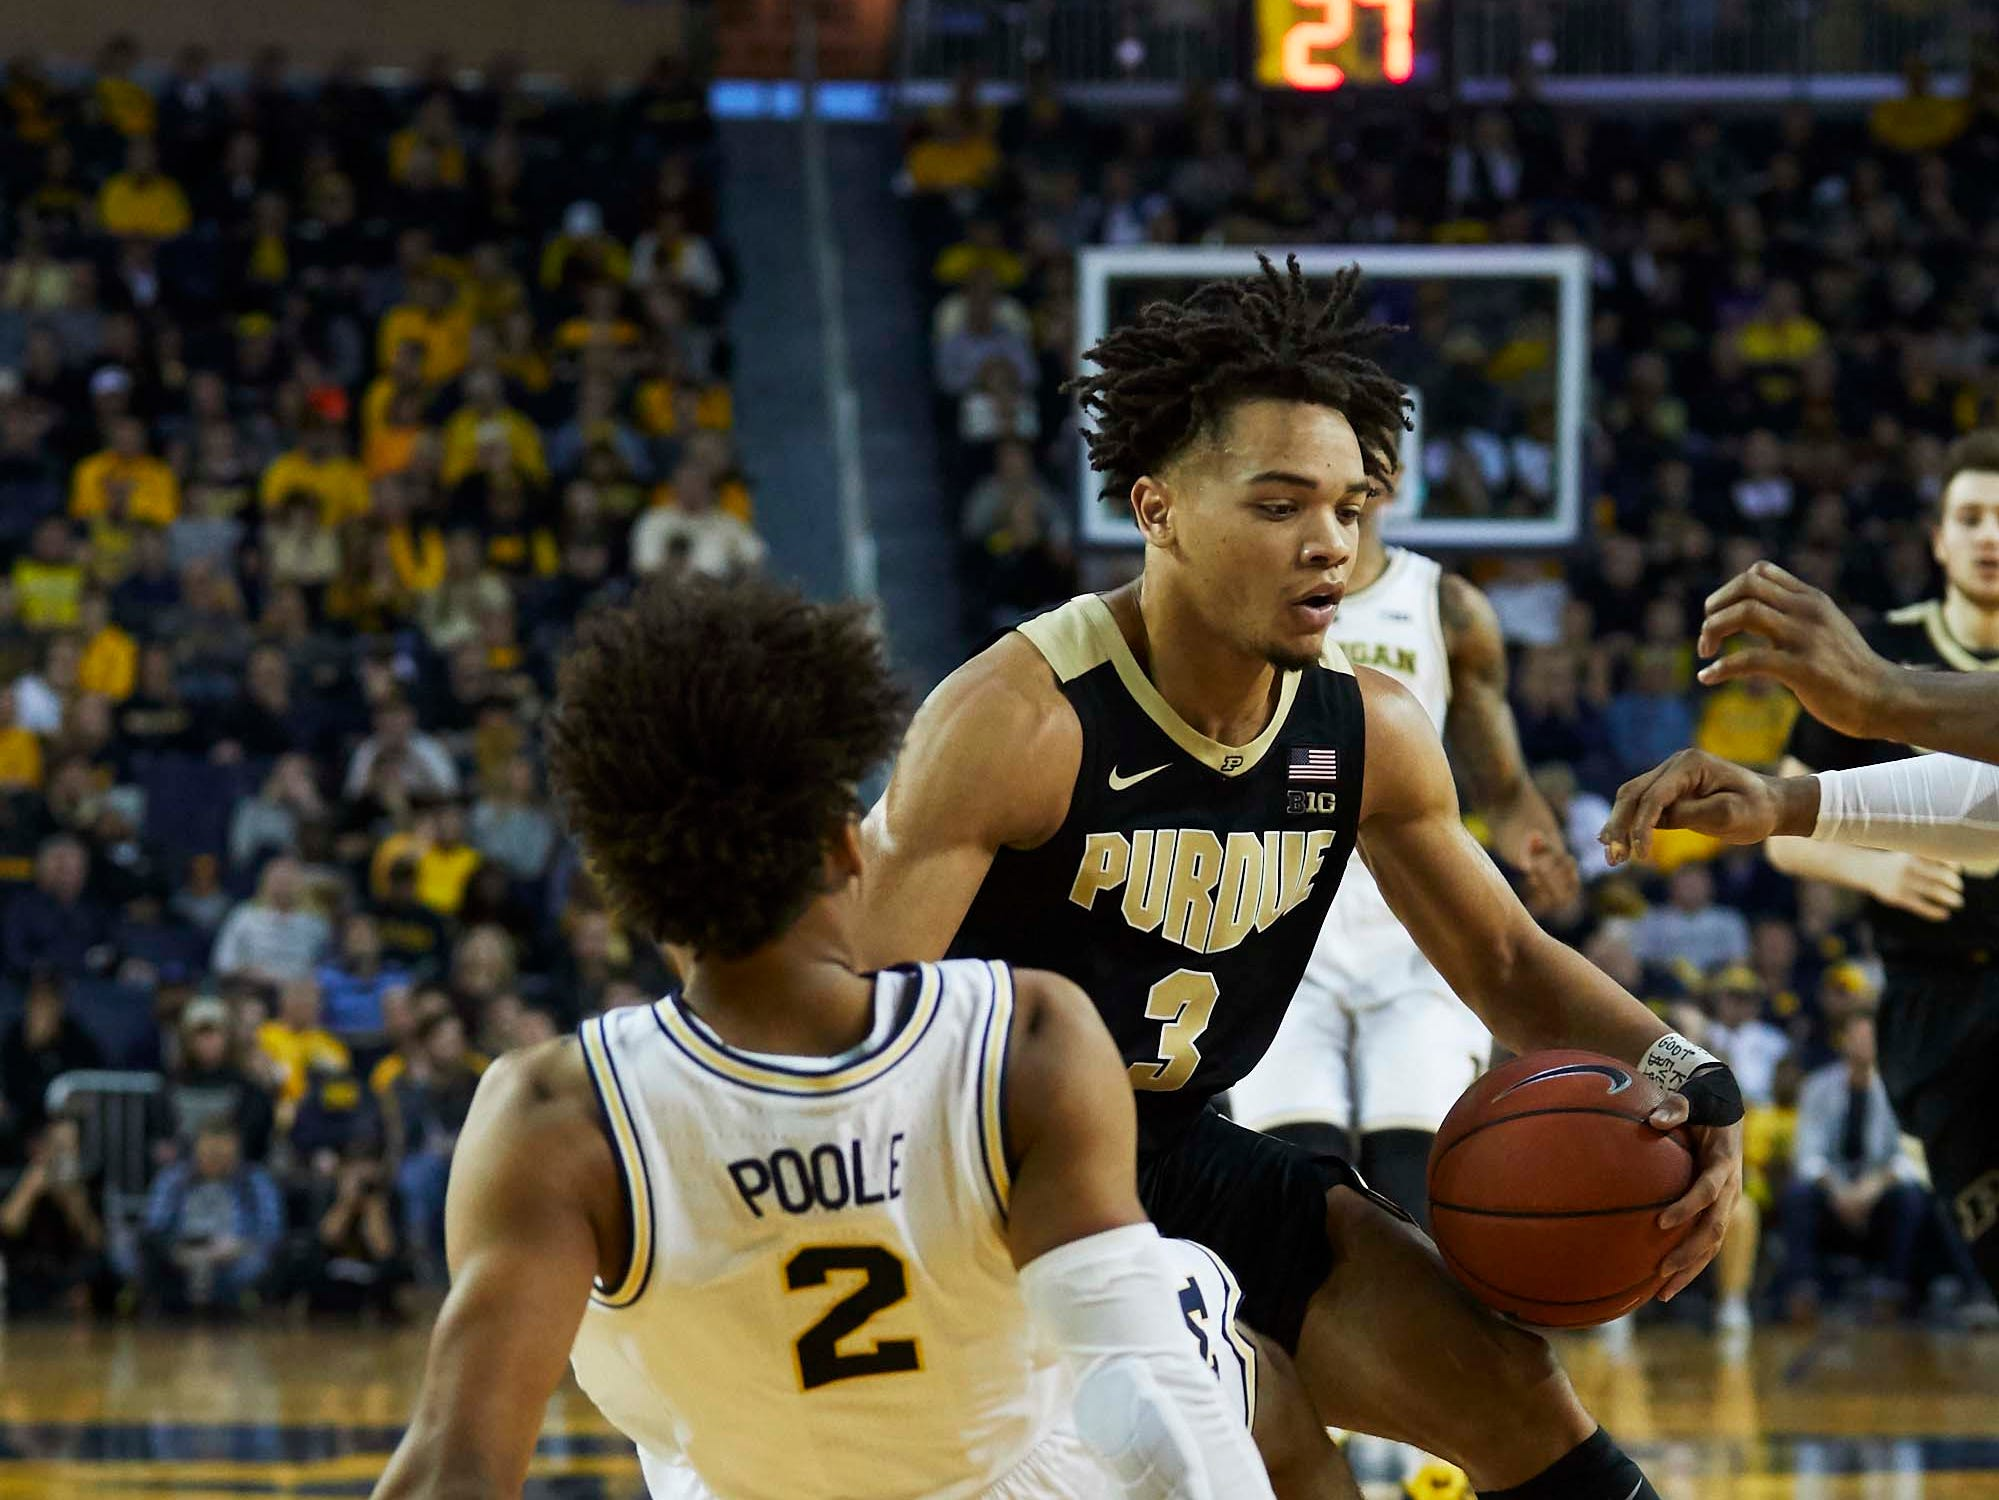 Dec 1, 2018; Ann Arbor, MI, USA; Purdue Boilermakers guard Carsen Edwards (3) charges Michigan Wolverines guard Jordan Poole (2) in the second half at Crisler Center. Mandatory Credit: Rick Osentoski-USA TODAY Sports